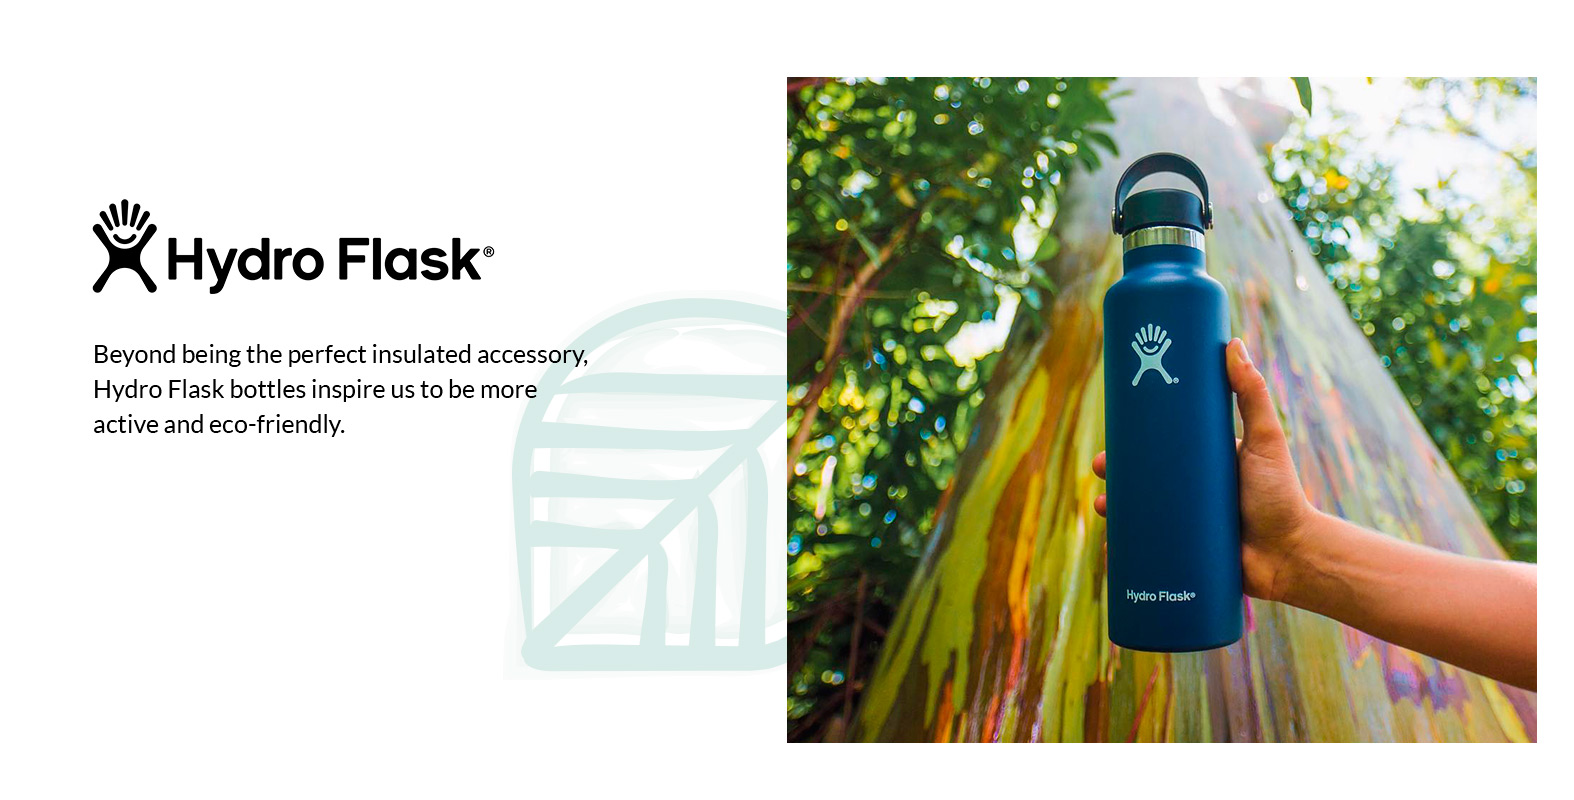 D-PS-05-P19-IMPACT-ECO-HOMME-HydroFlask.psd